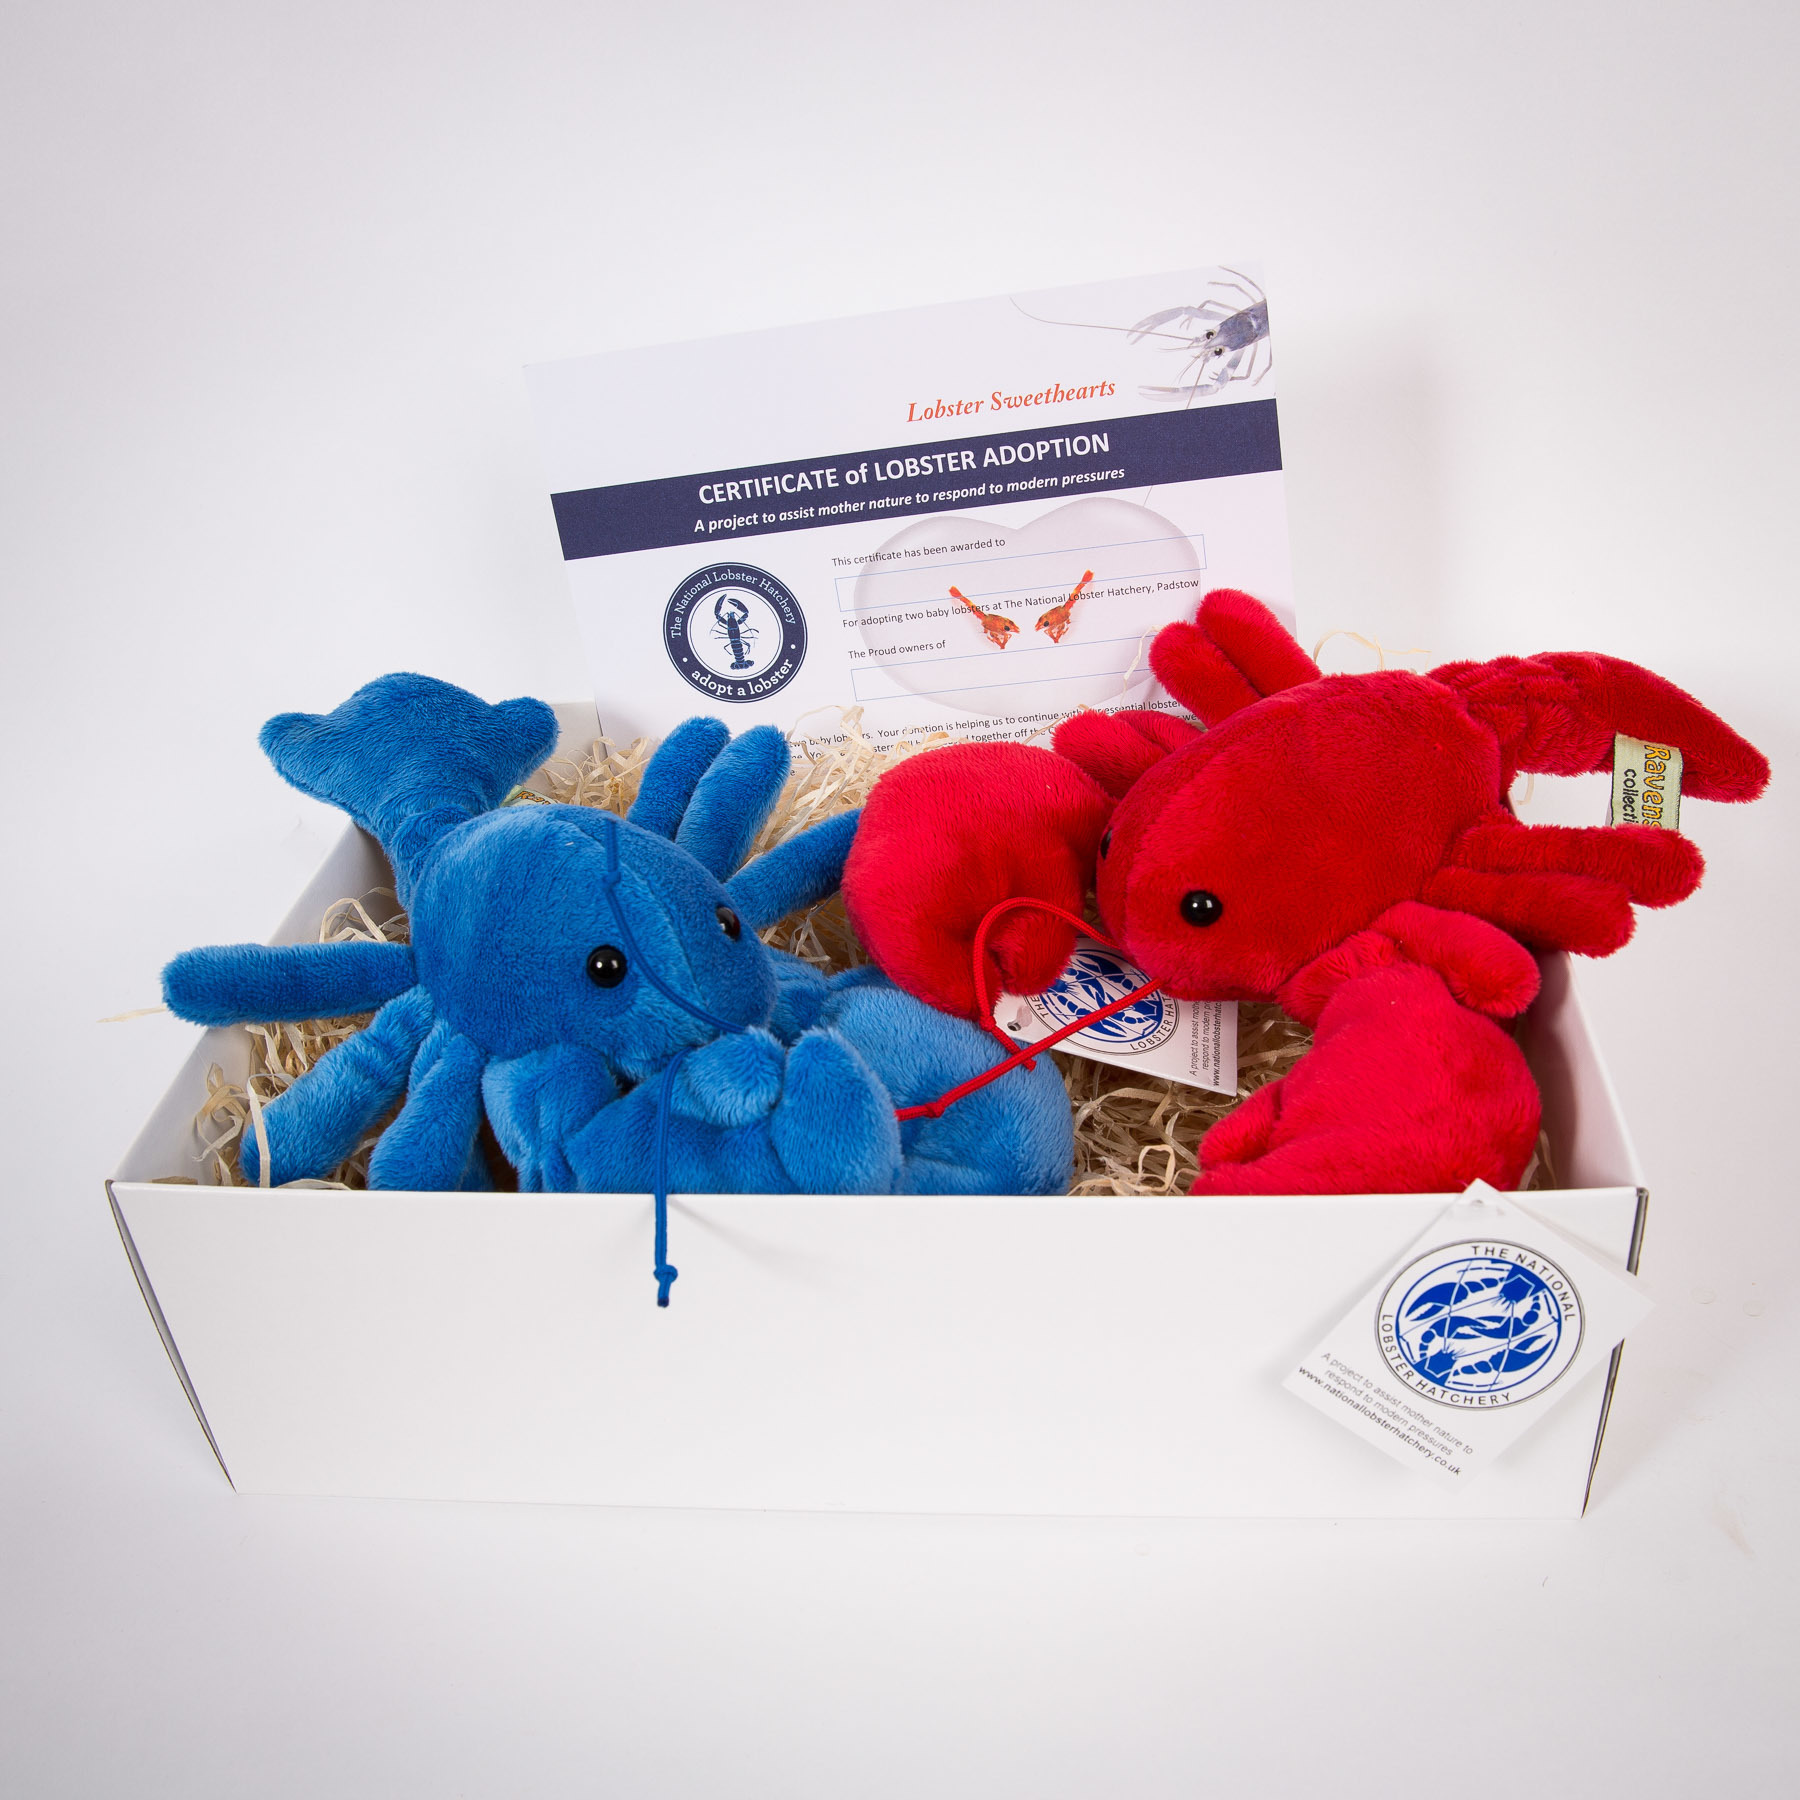 Adopt a Lobster Sweethearts Gift Pack with Red & Blue fluffy lobsters 00249